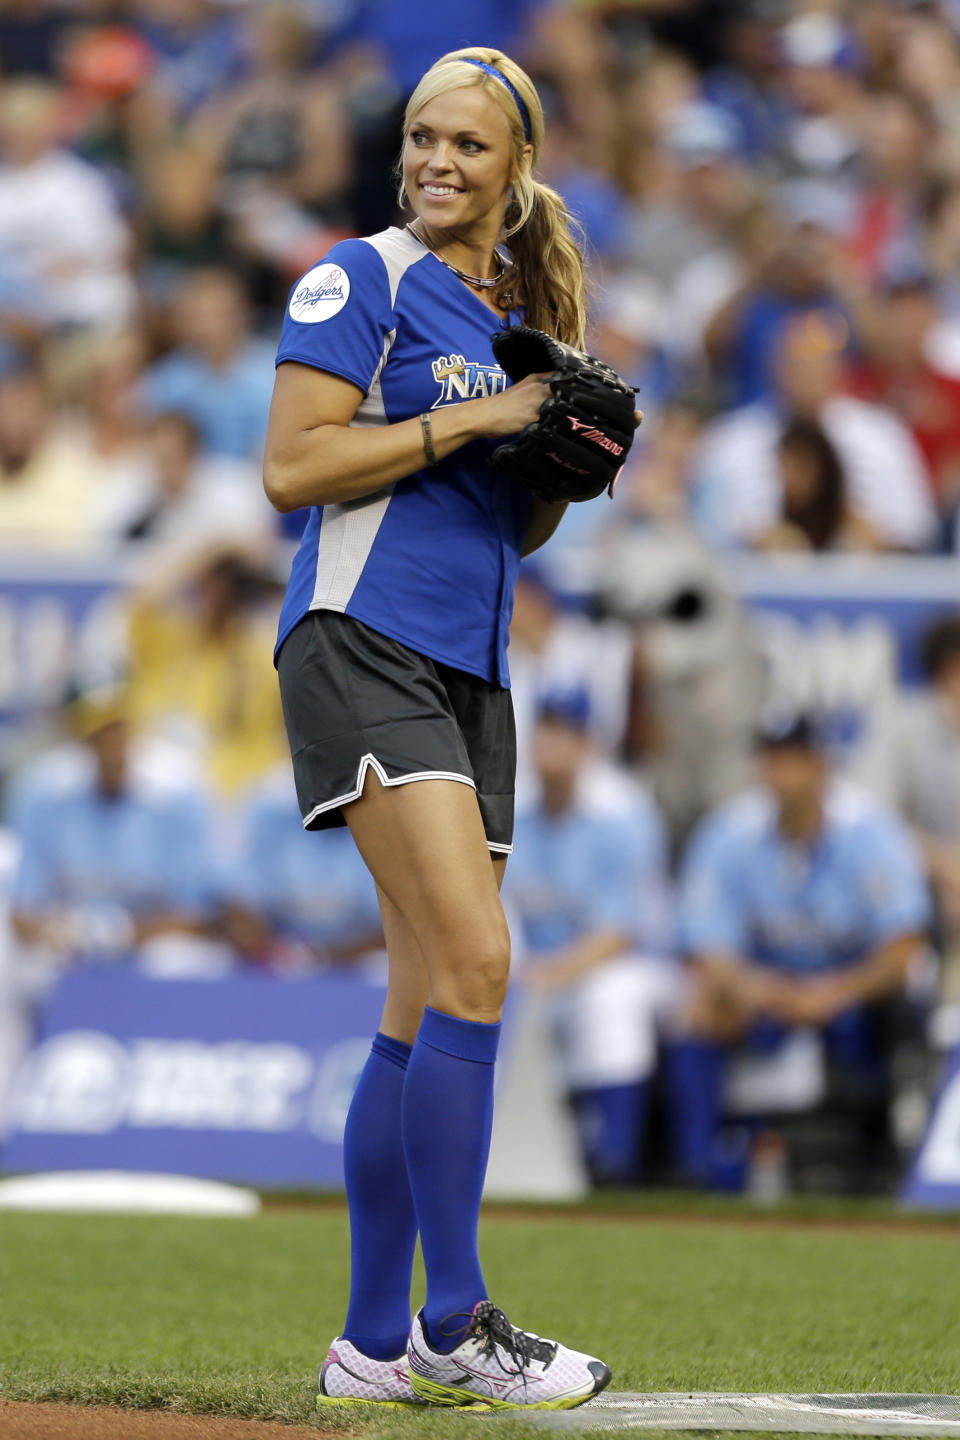 Former softball player Jennie Finch prepares to pitch during the first inning of the MLB All-Star celebrity softball game, Sunday, July 8, 2012, in Kansas City, Mo. (AP Photo/Jeff Roberson)